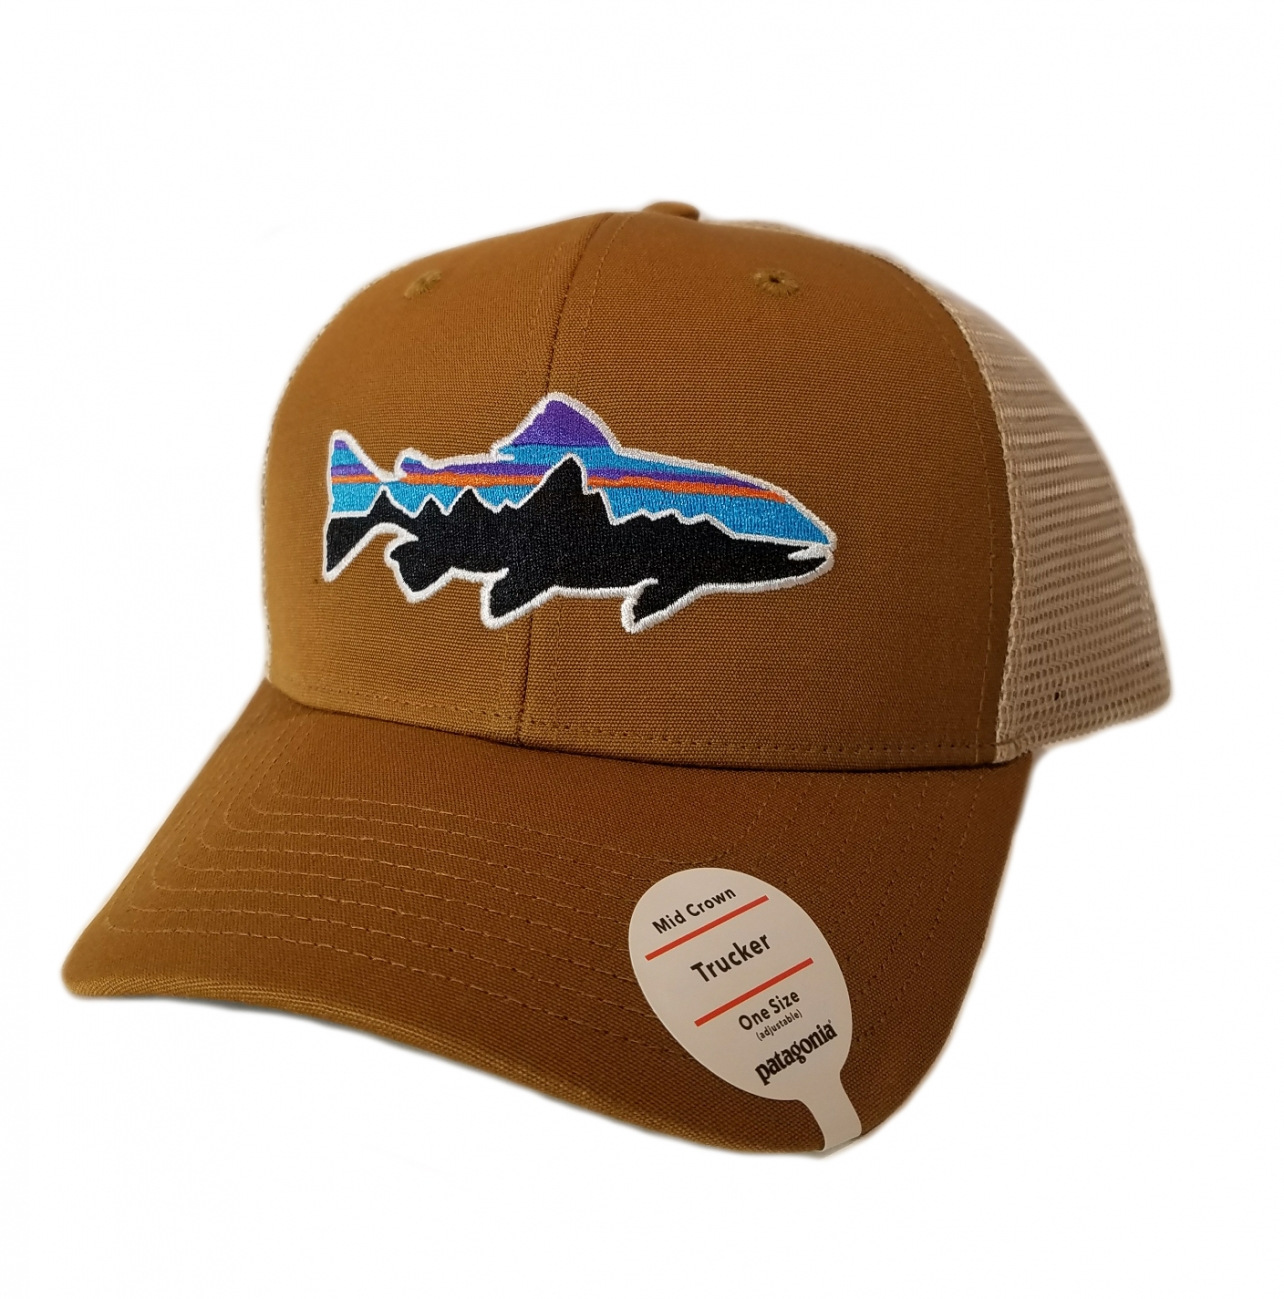 Patagonia Fishing Hats